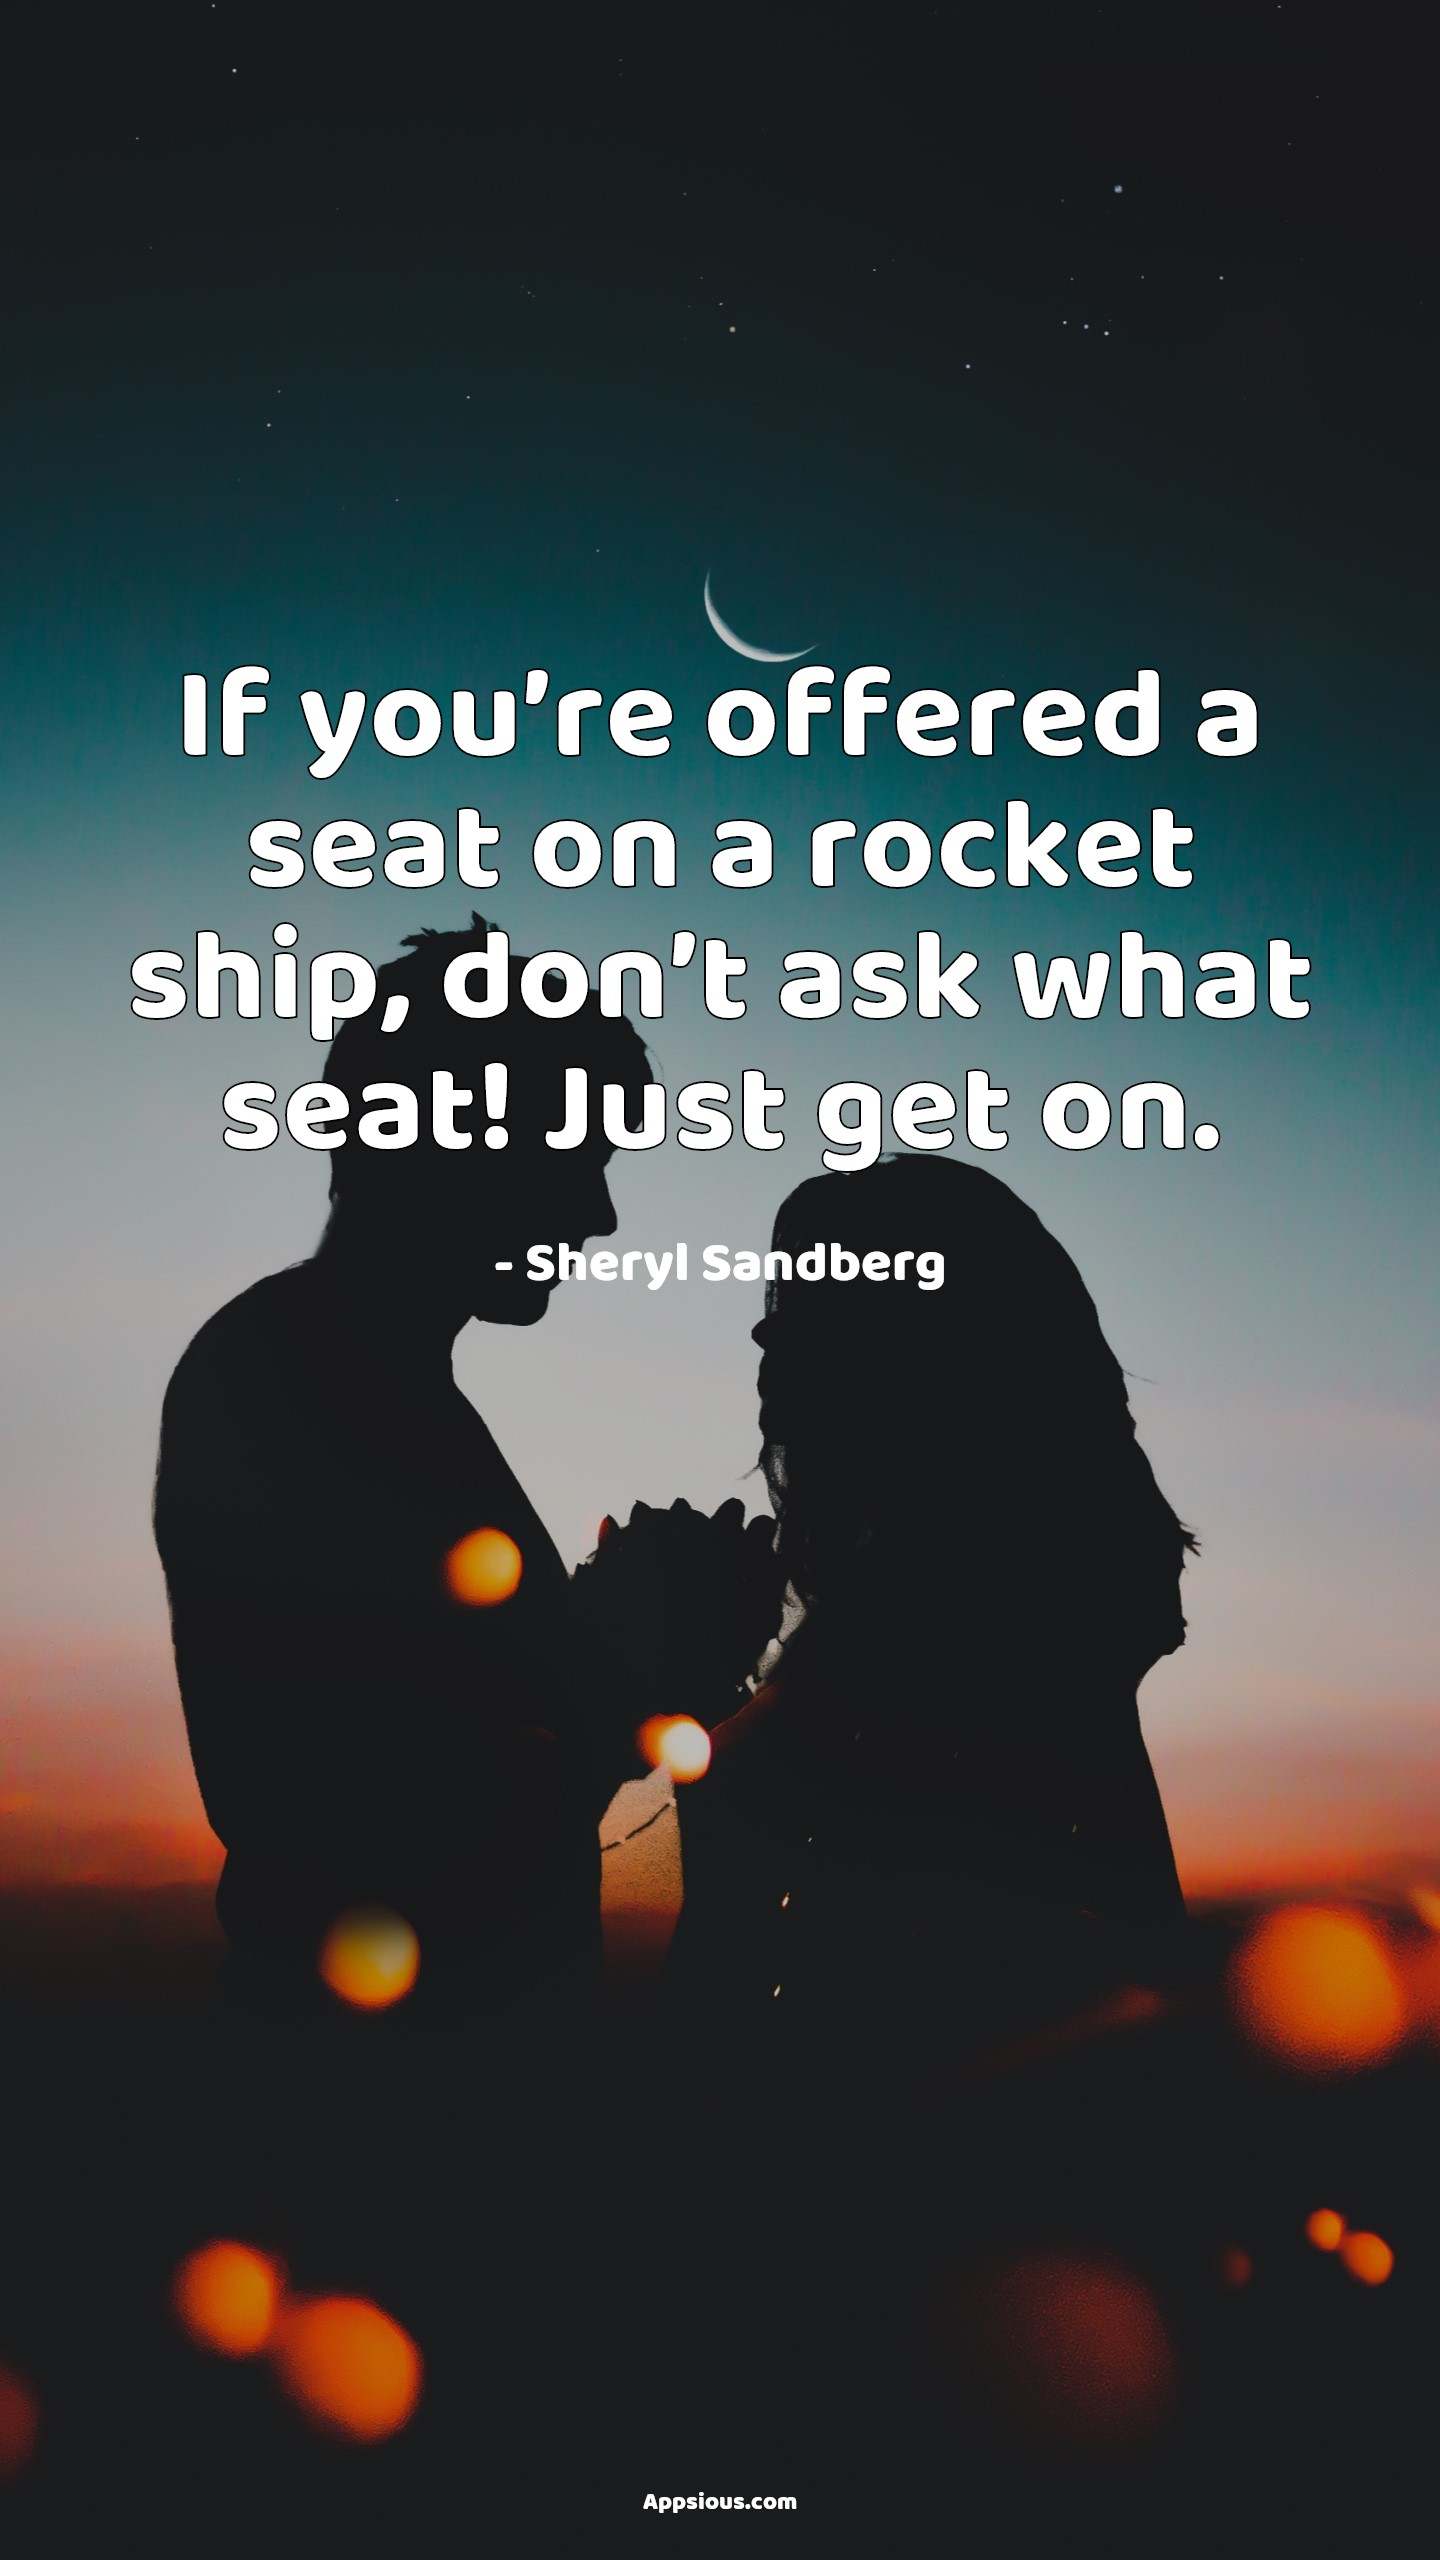 If you're offered a seat on a rocket ship, don't ask what seat! Just get on.